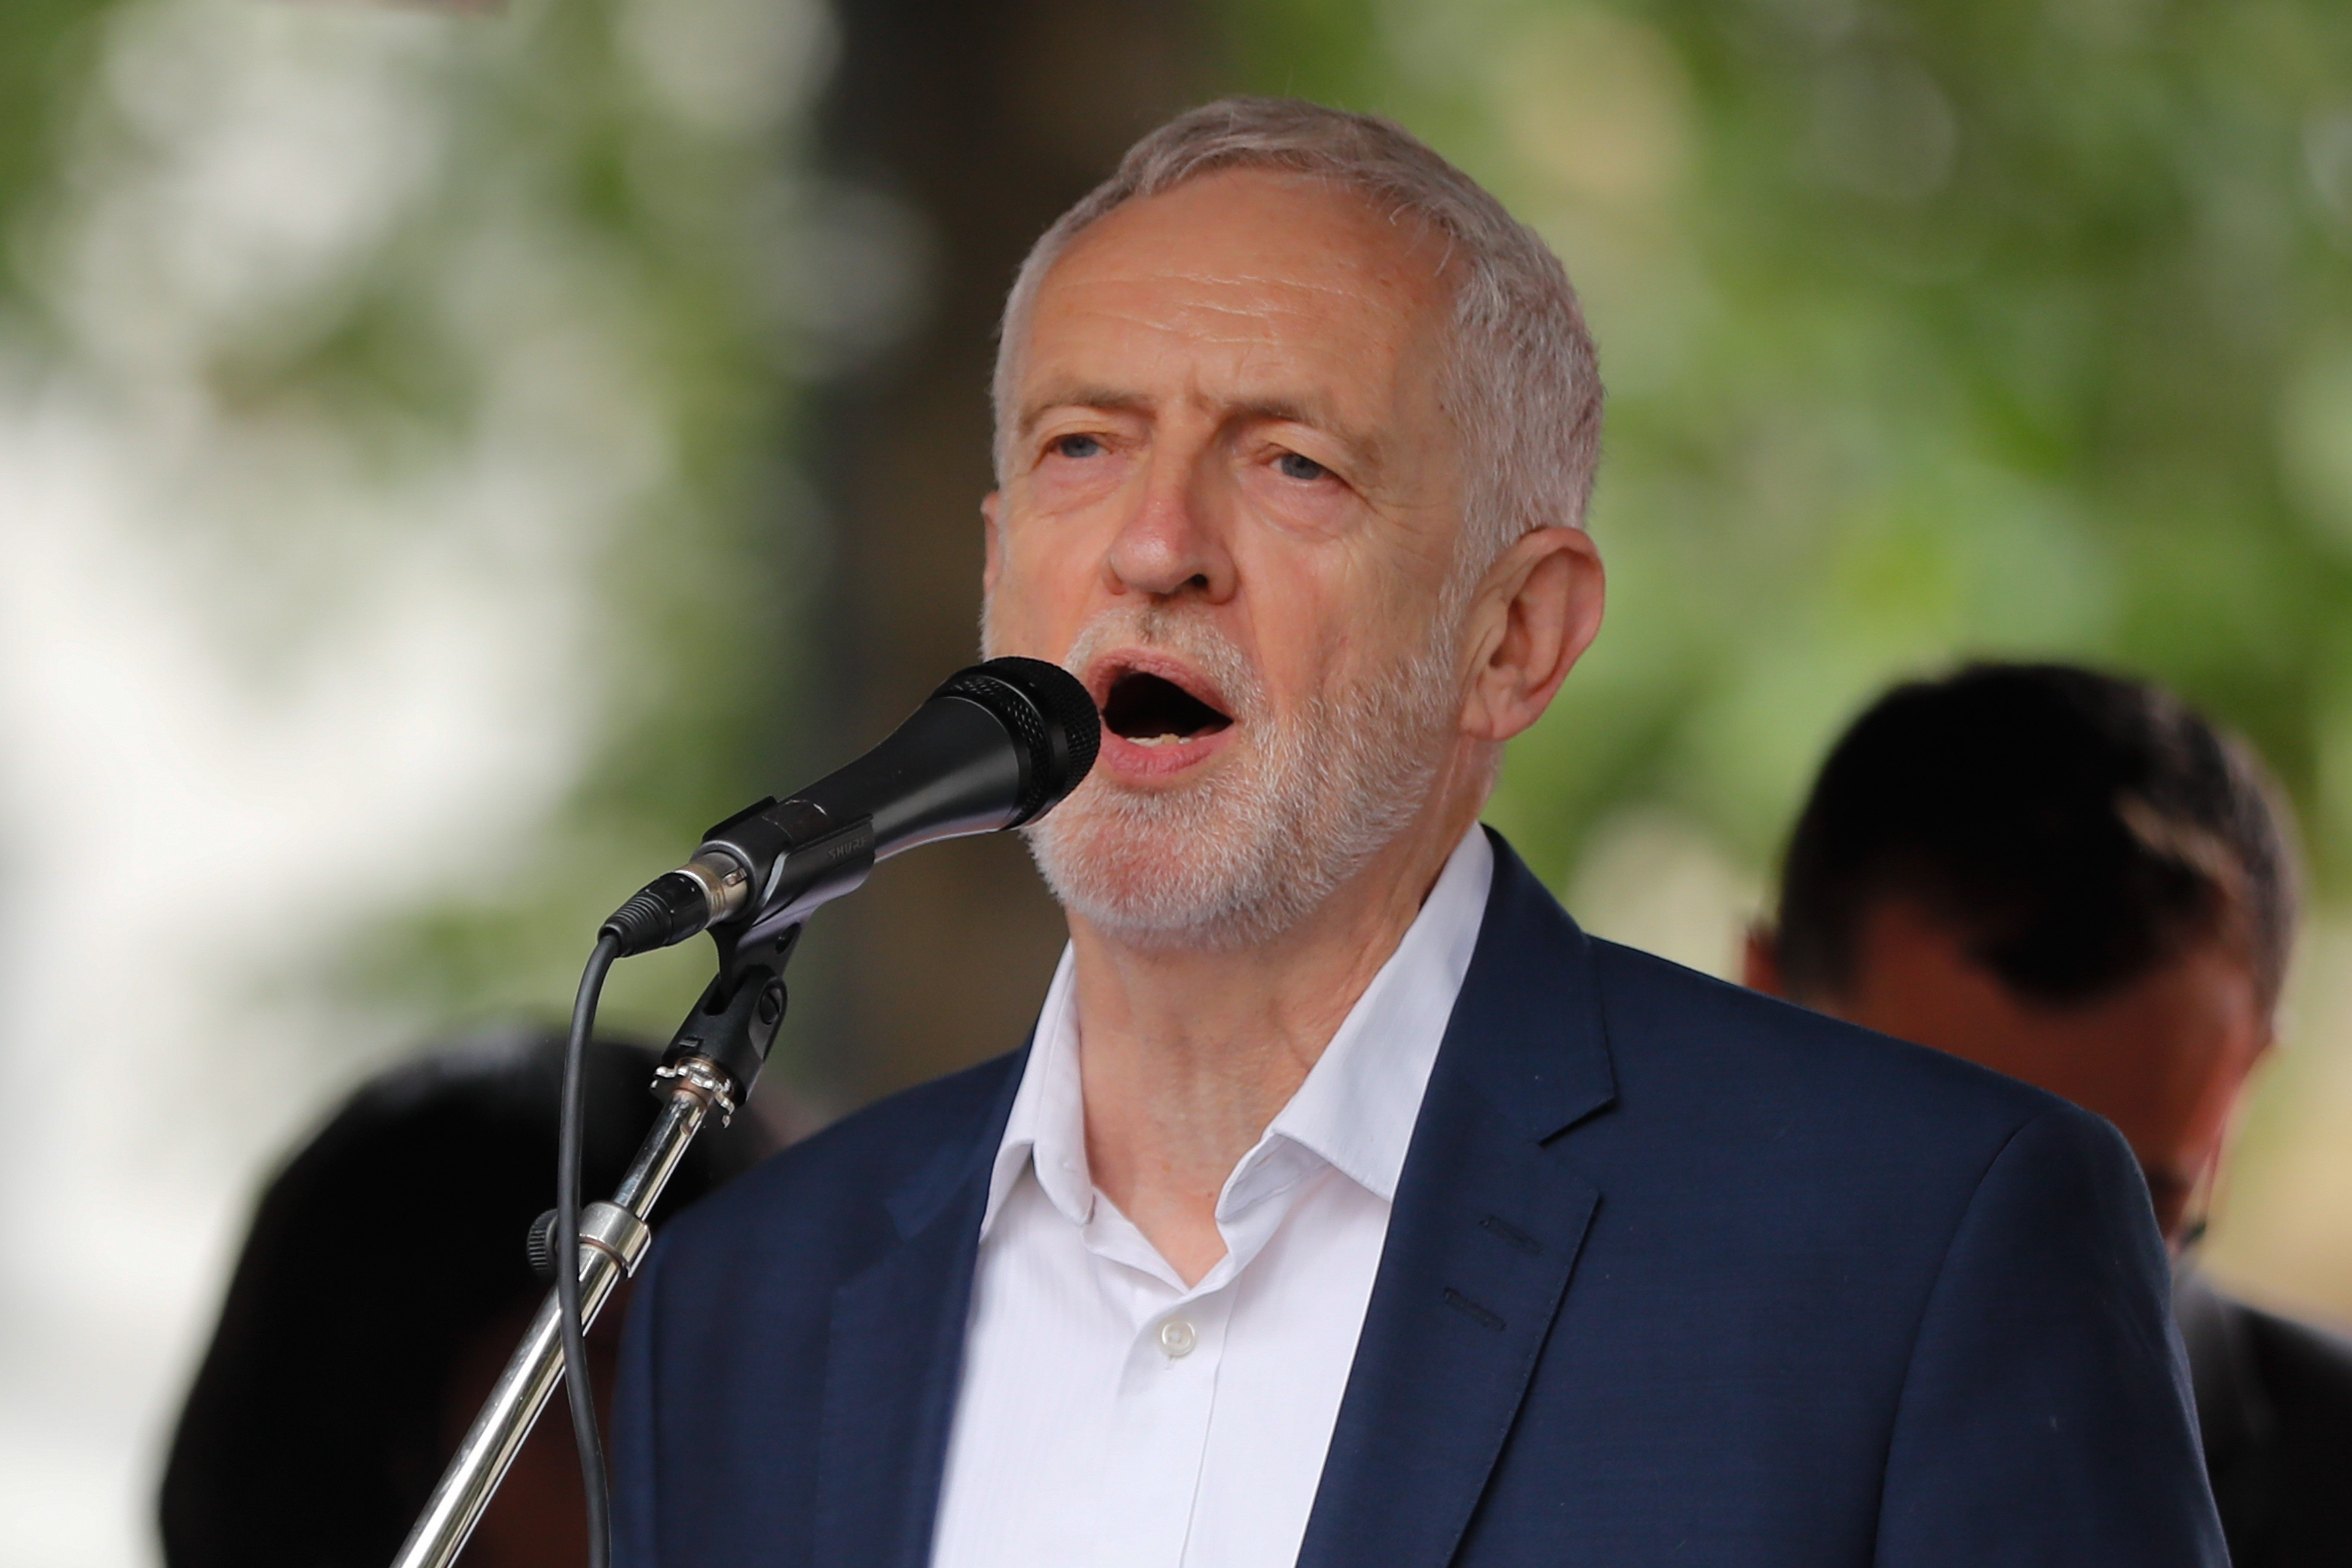 With Panorama's hatchet job on Labour antisemitism, BBC has become pro-Tory media